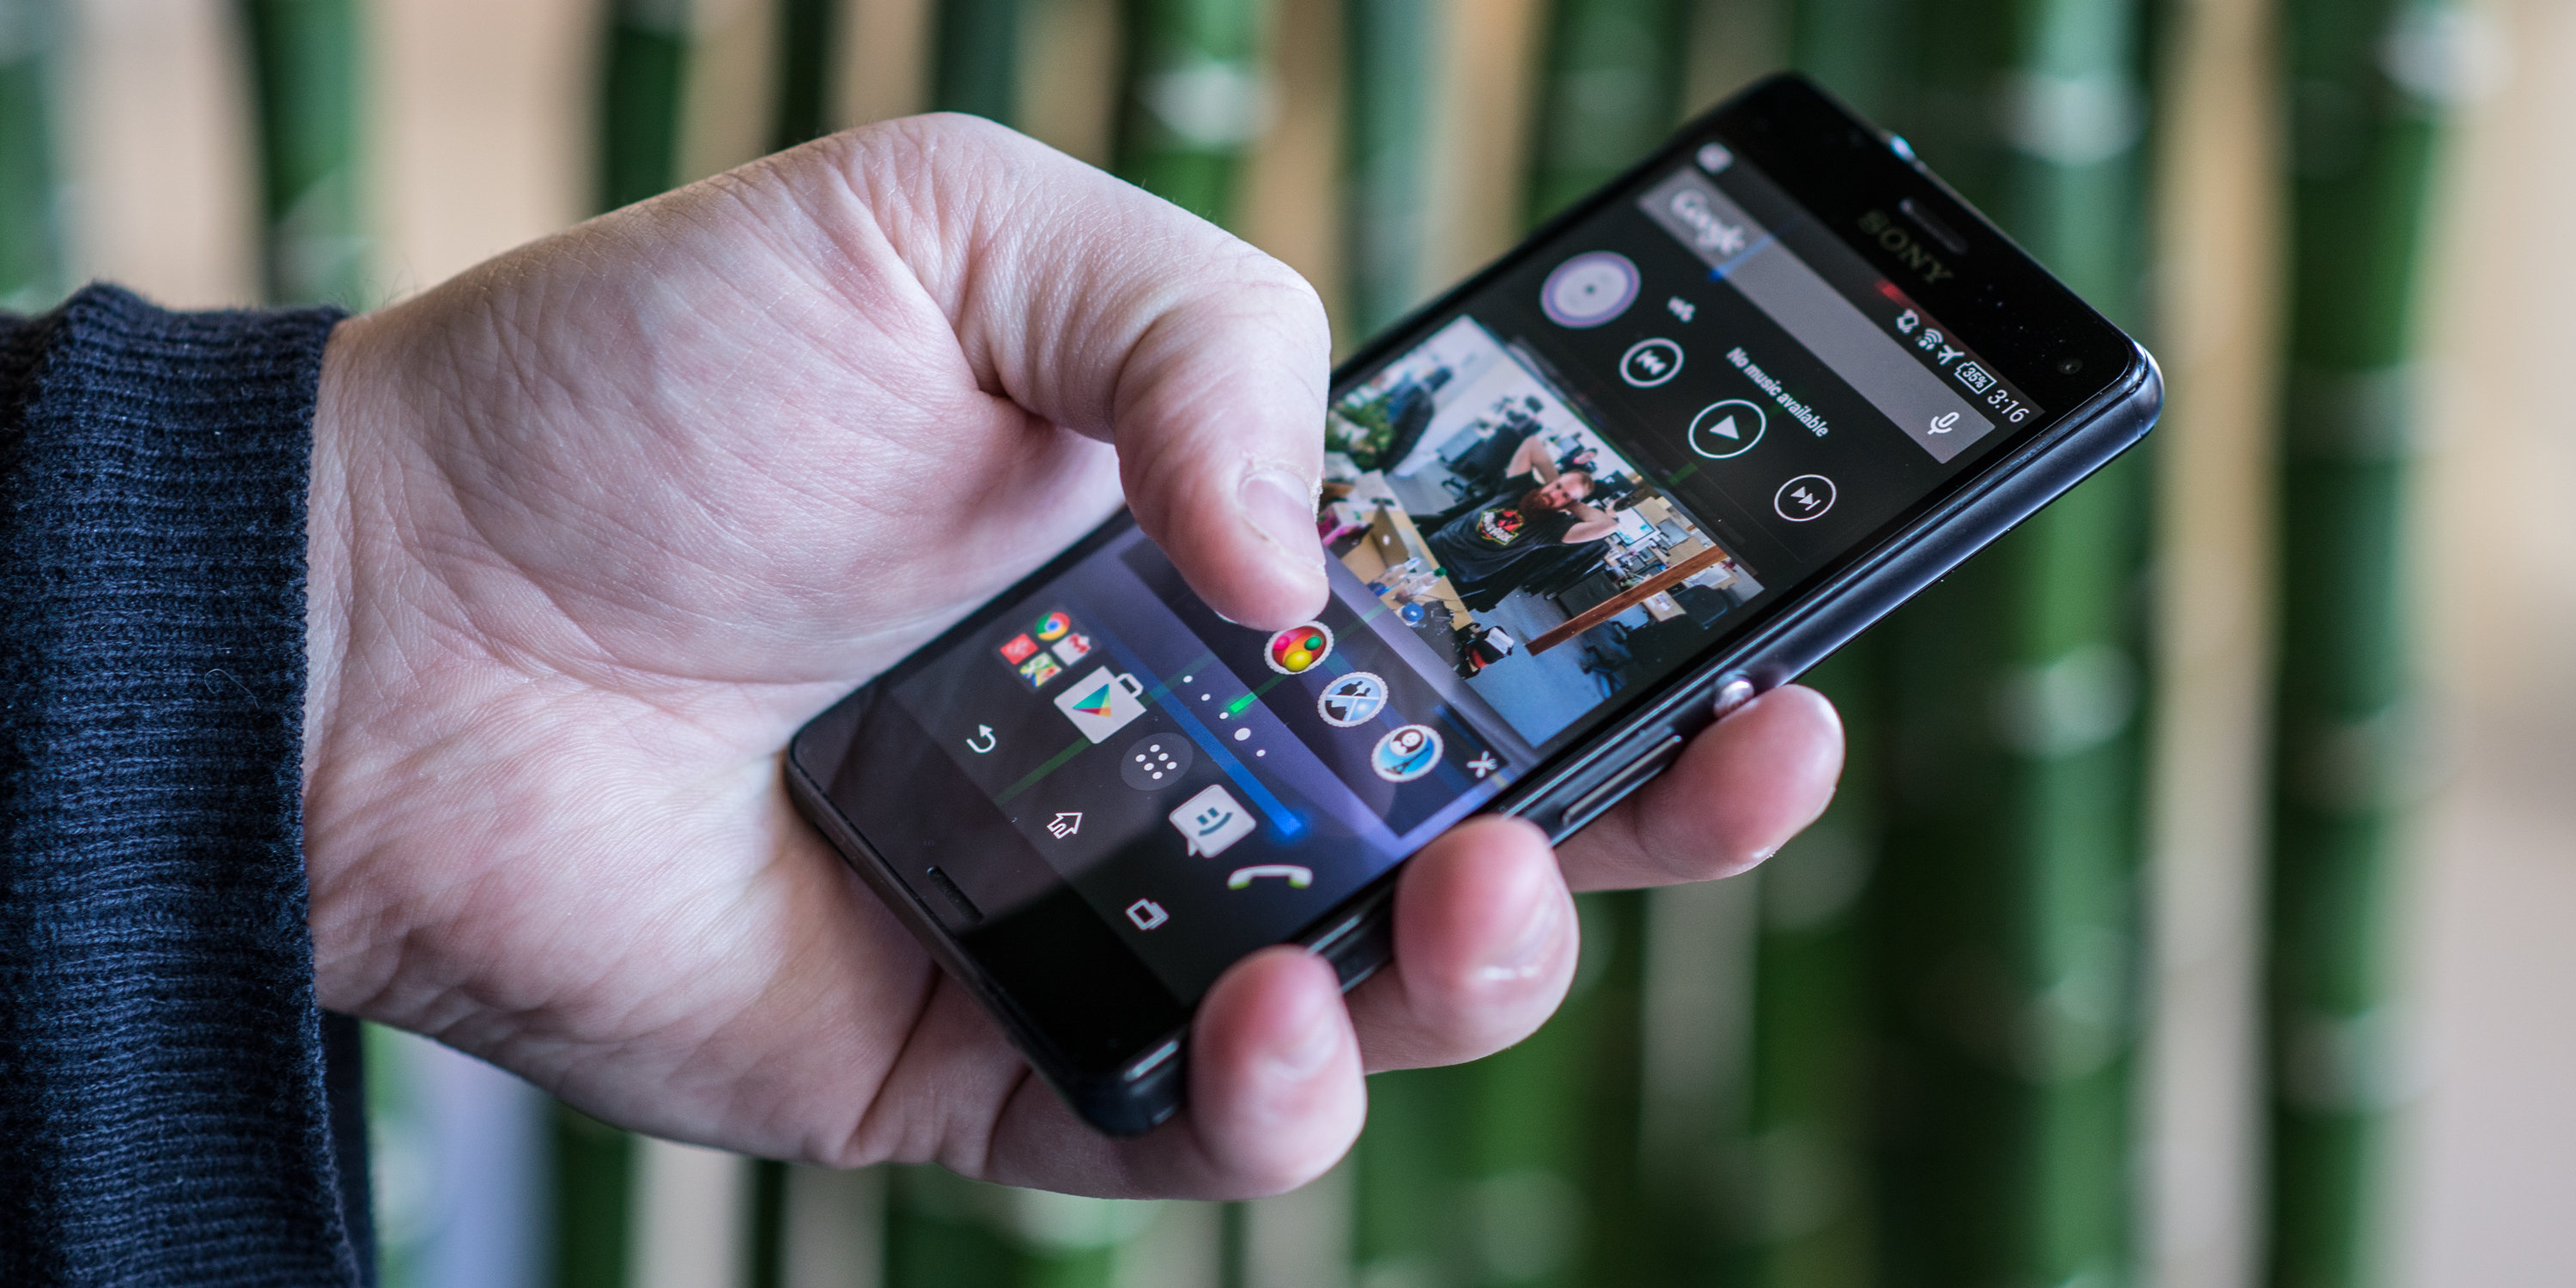 A photo of the Sony Xperia Z3 Compact in a hand.